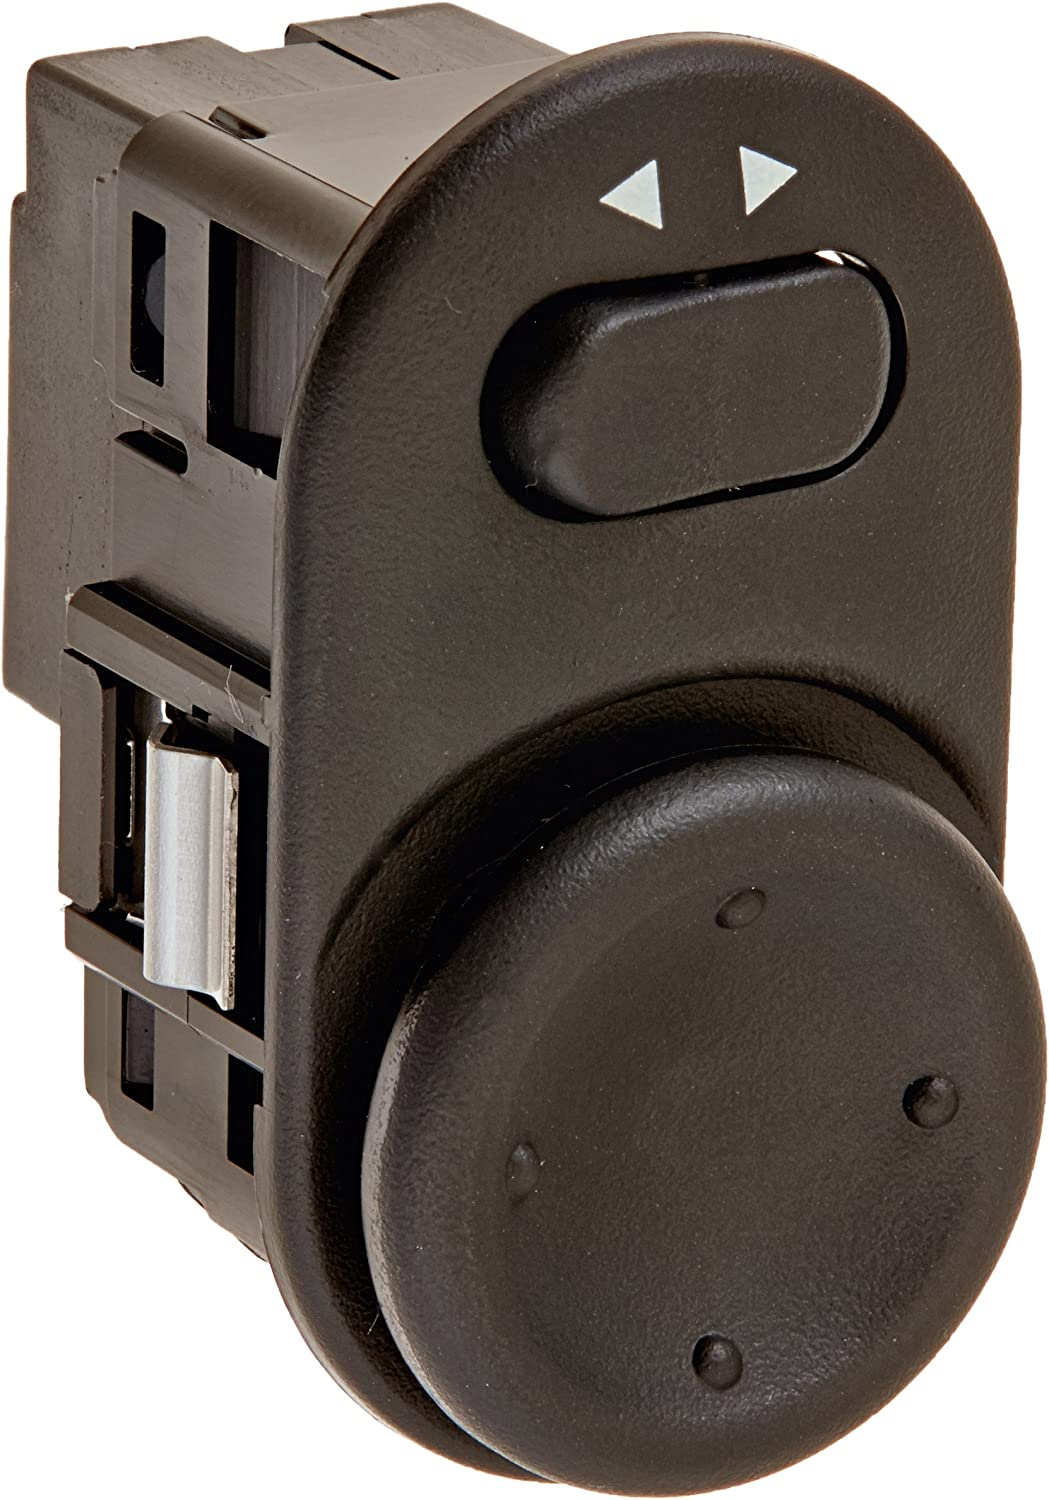 Genuine GM Max 54% OFF 22664402 35% OFF Rear View Control Switch Remote Mirror Exte